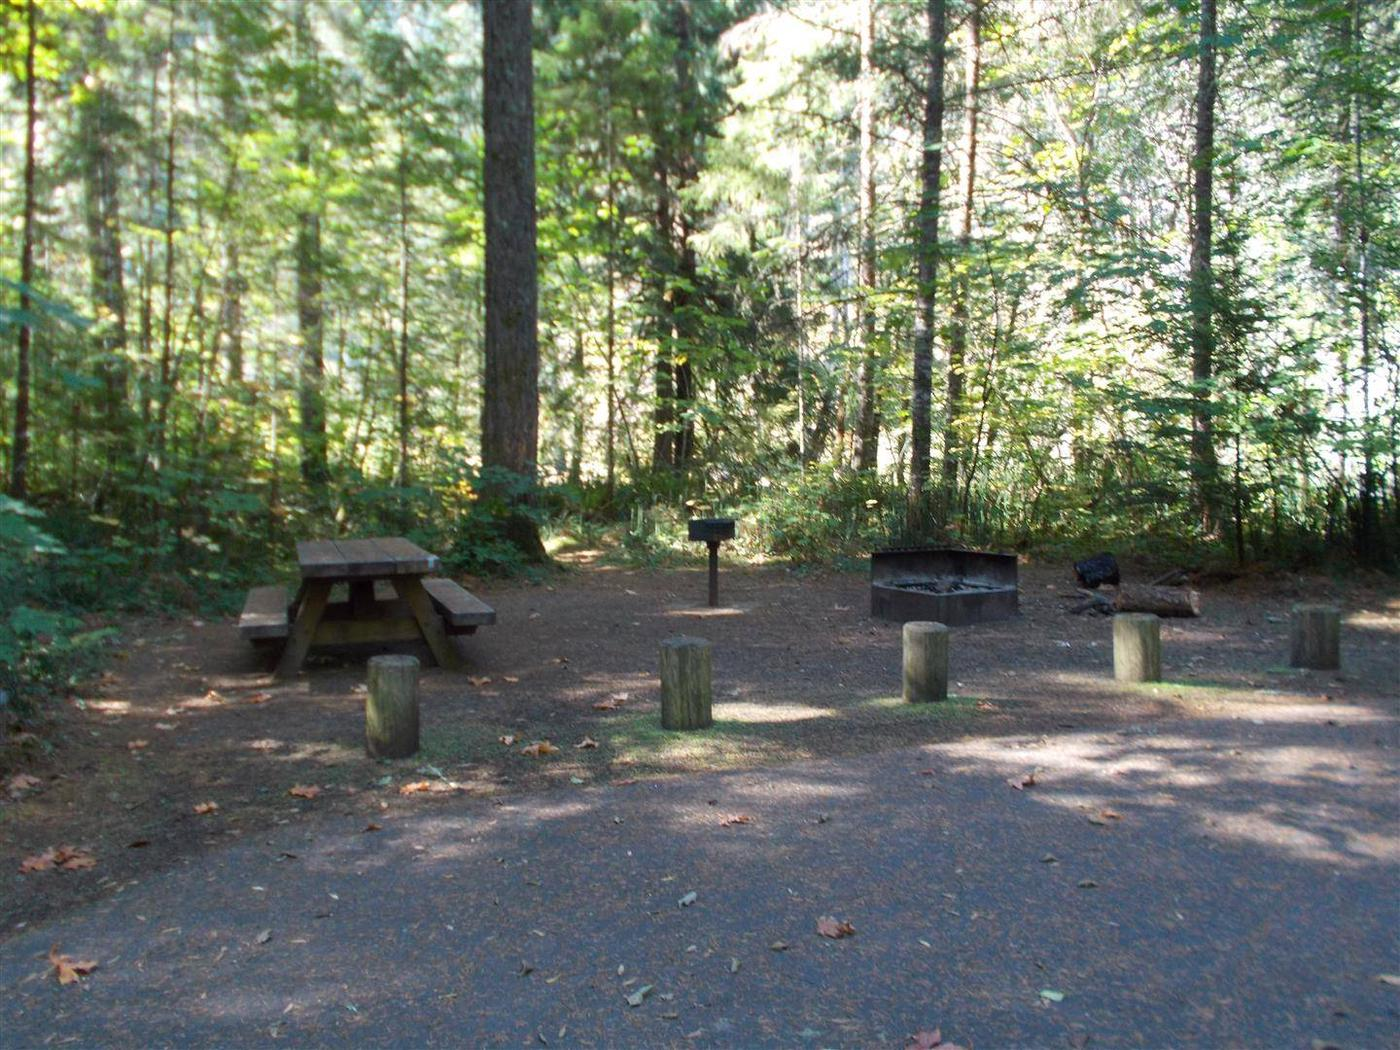 Flat campsite with one picnic table and fire ring.010